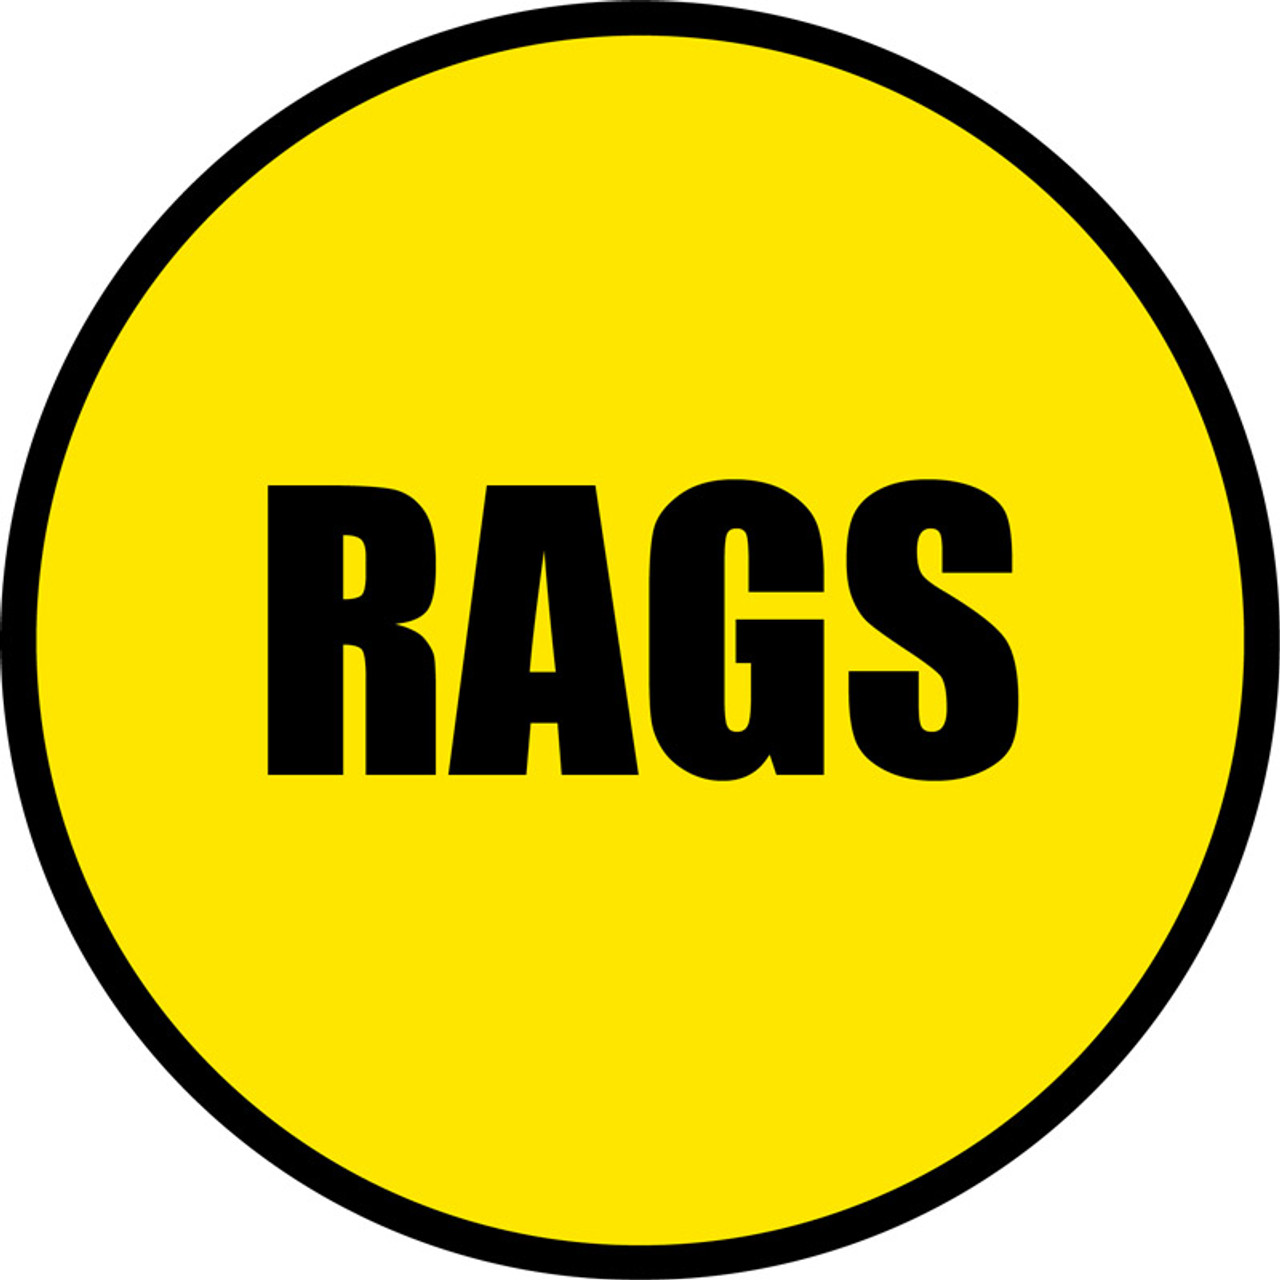 Rags Sign Floor Creative Safety Supply